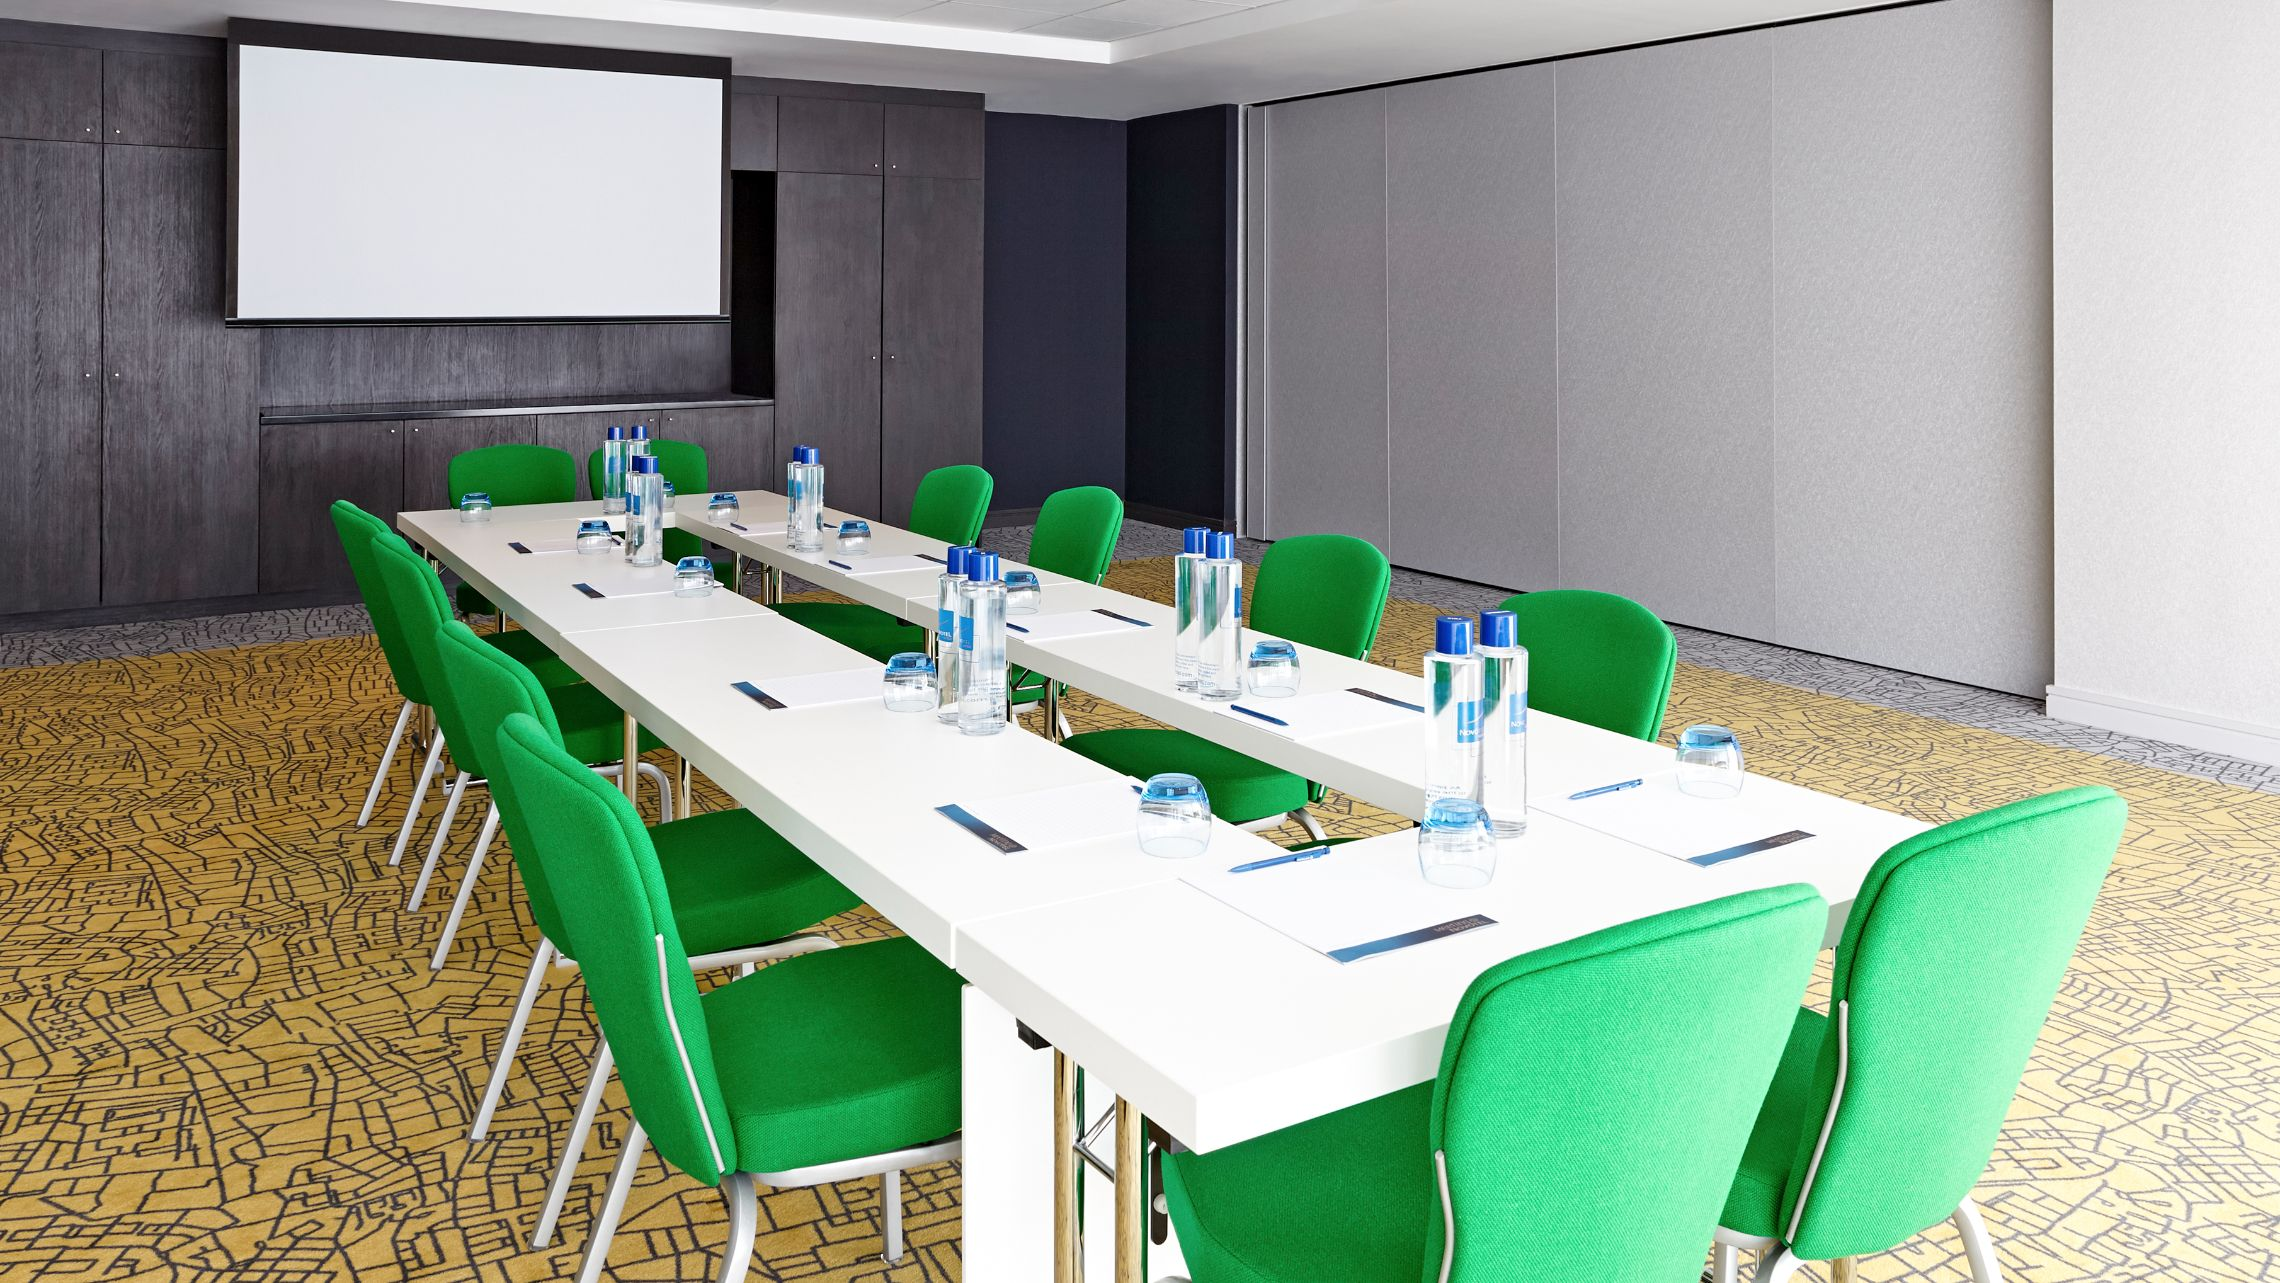 Meeting Room of the Novotel Property Development in London